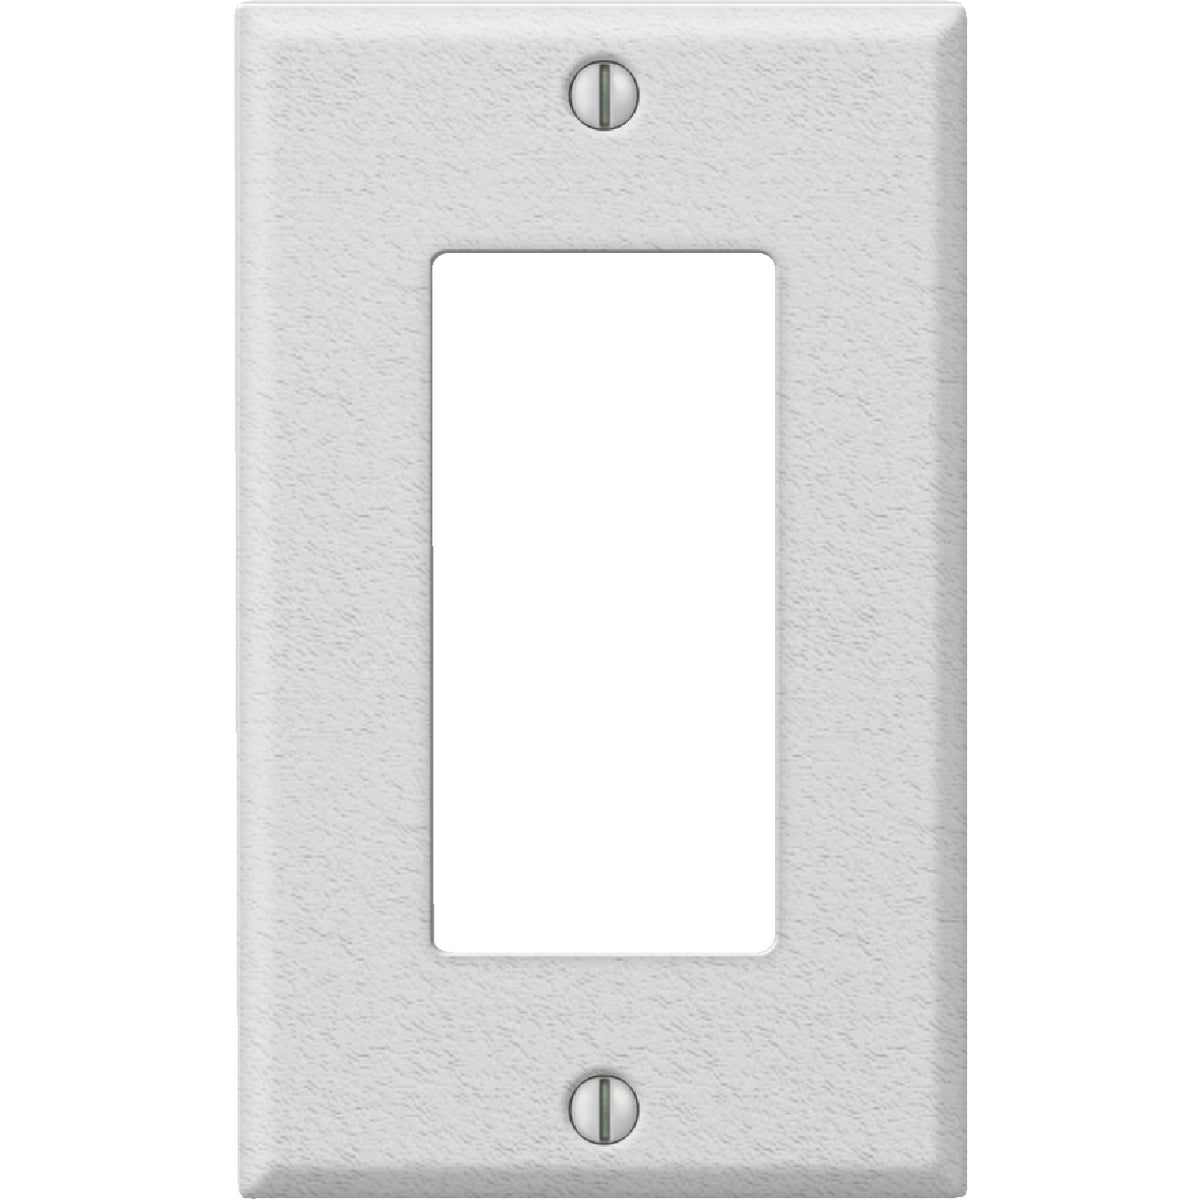 WHT ROCKER WALL PLATE - 8WK117 by Jackson Deerfield Mf